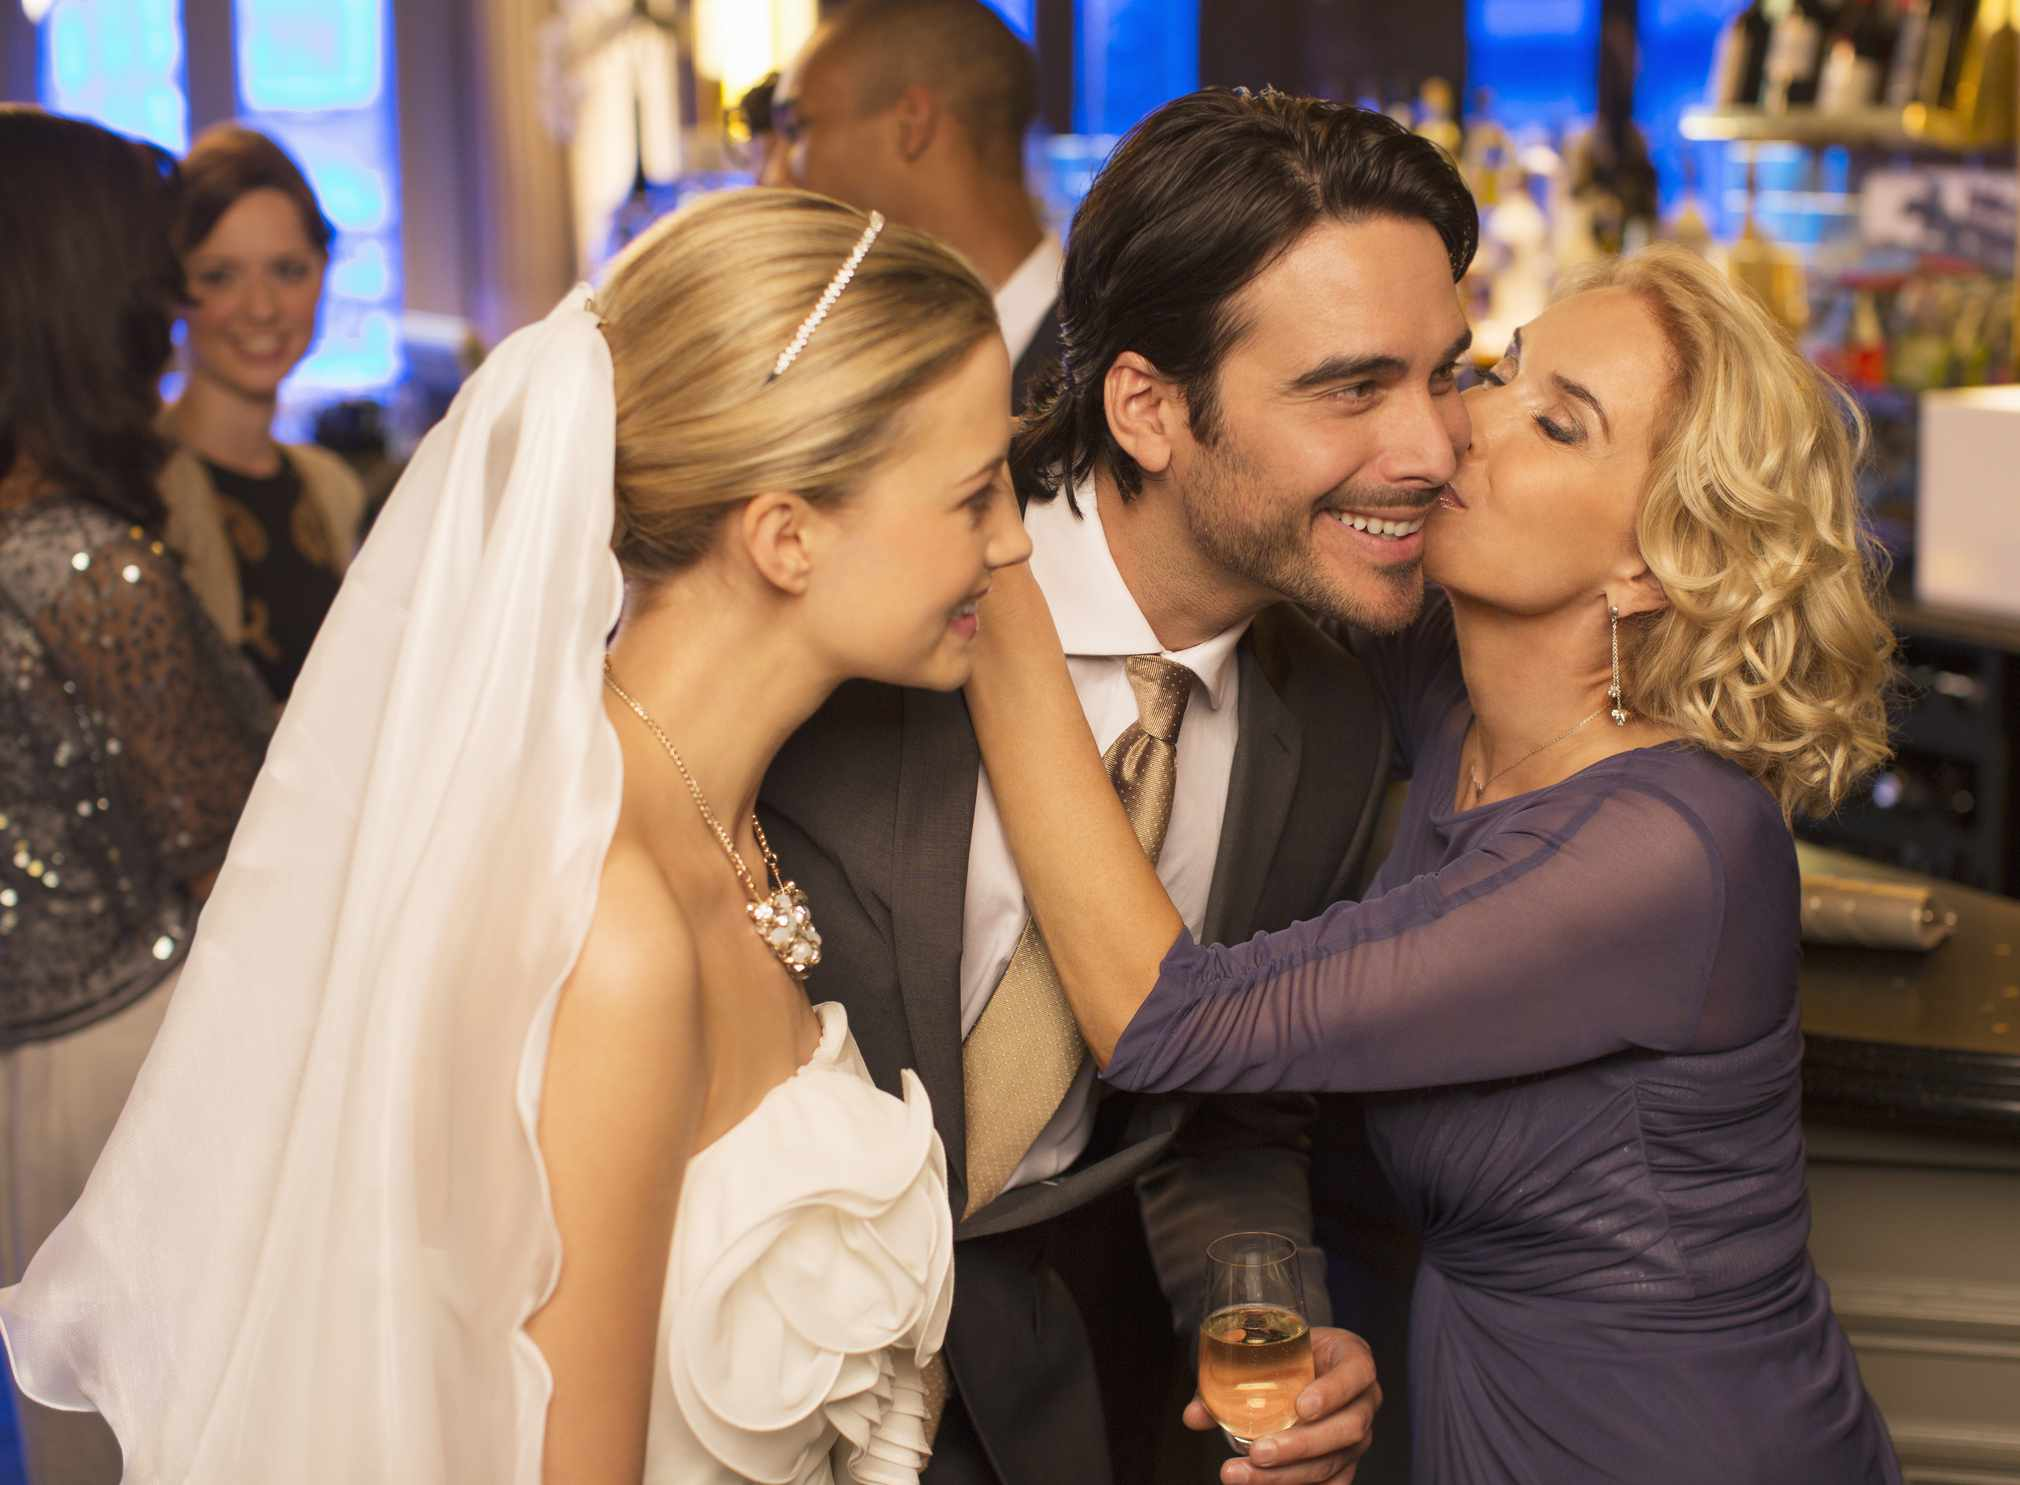 5 Great Mother Son Wedding Reception Dance Songs